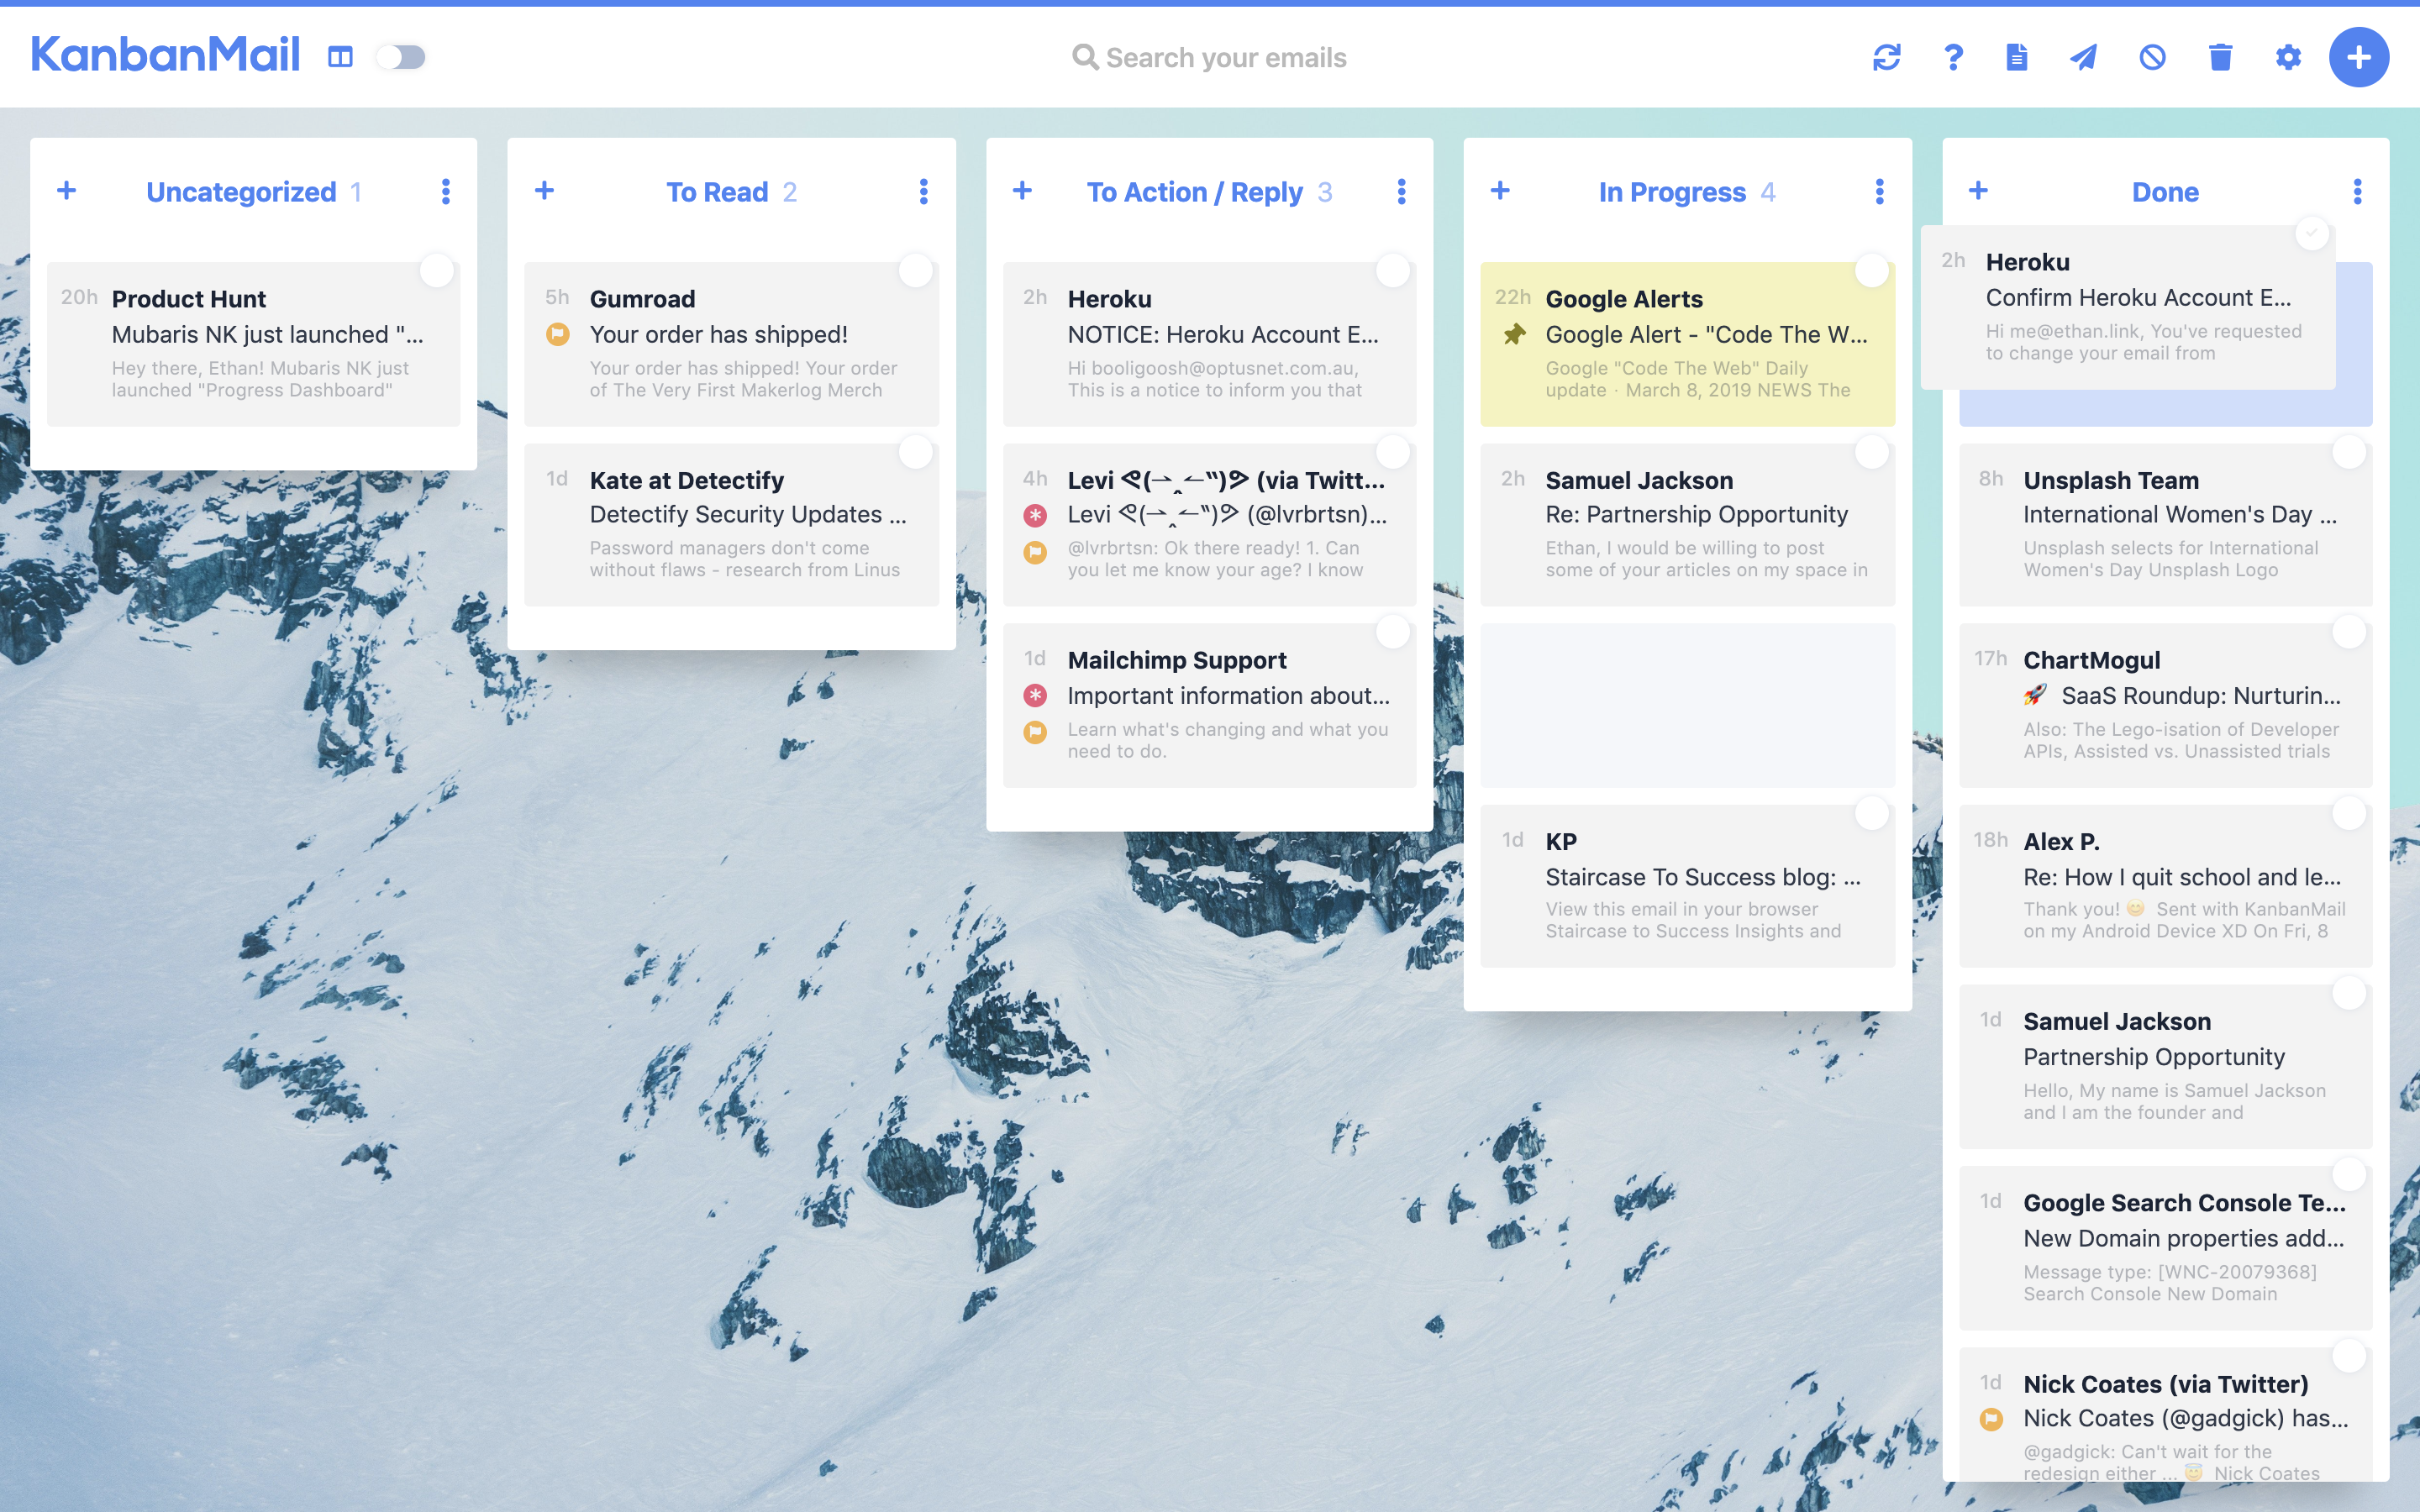 KanbanMail — A Kanban Board for your emails